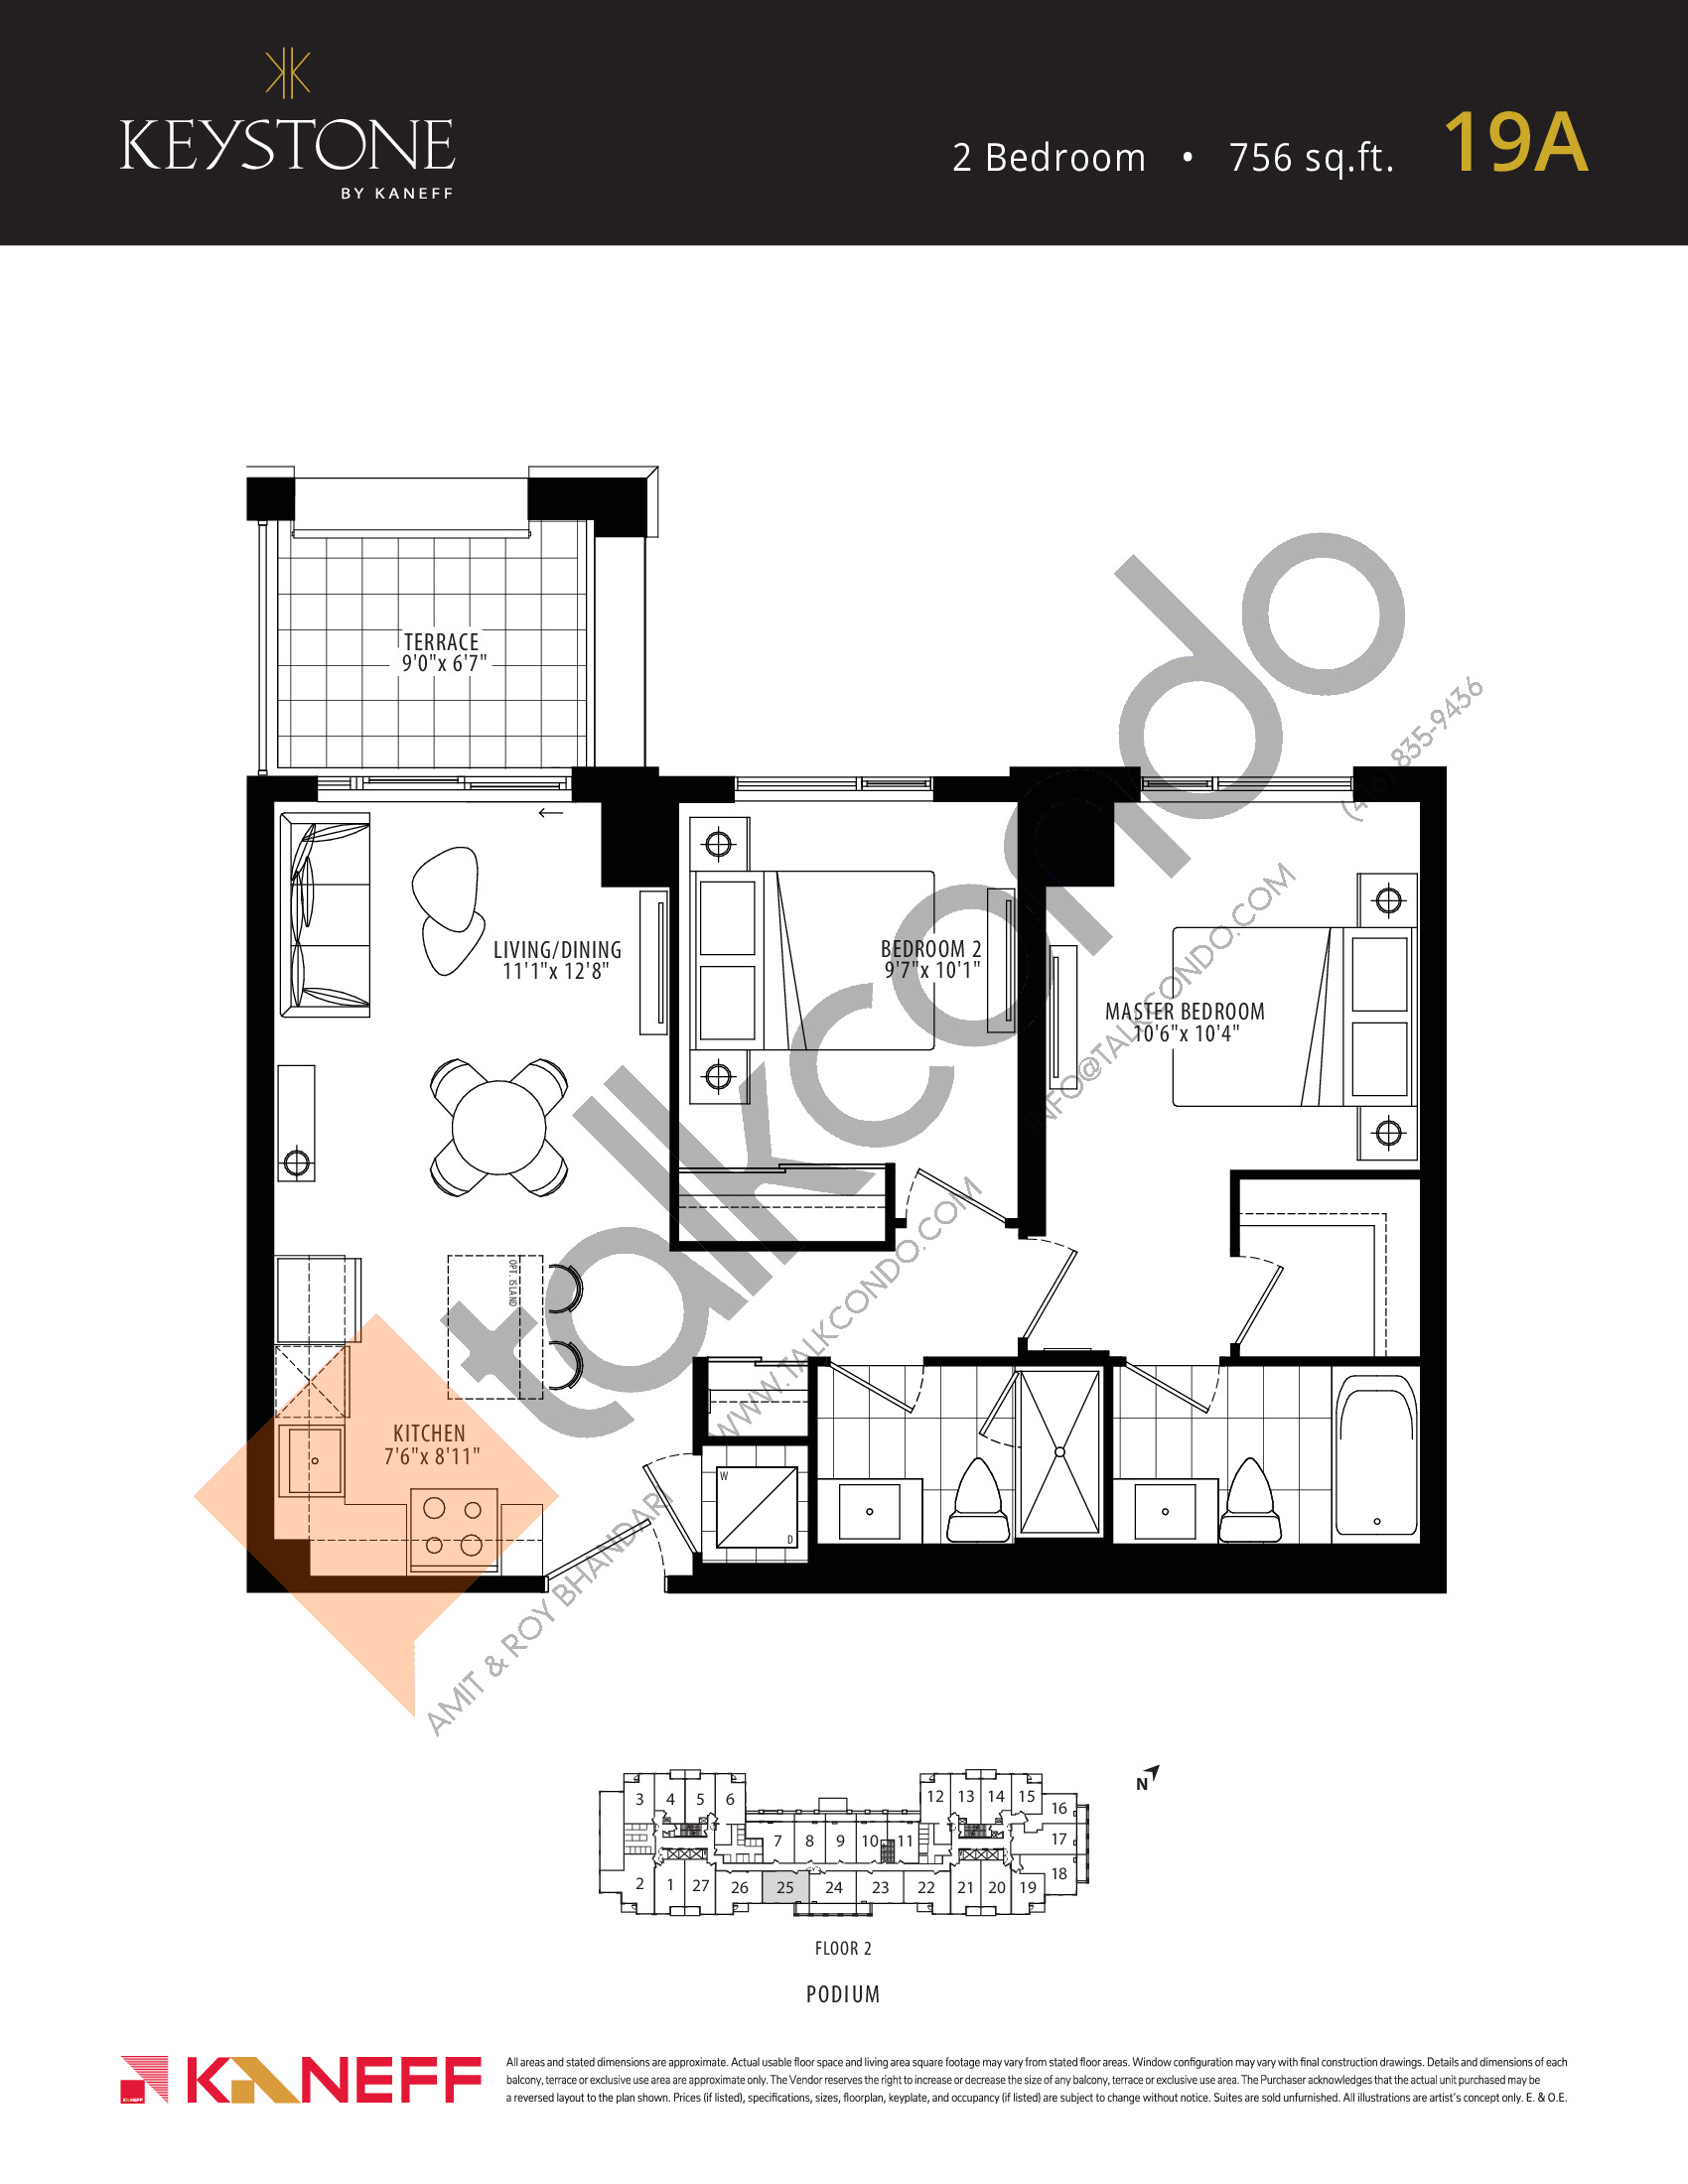 19A Floor Plan at Keystone Condos Phase 2 - 756 sq.ft